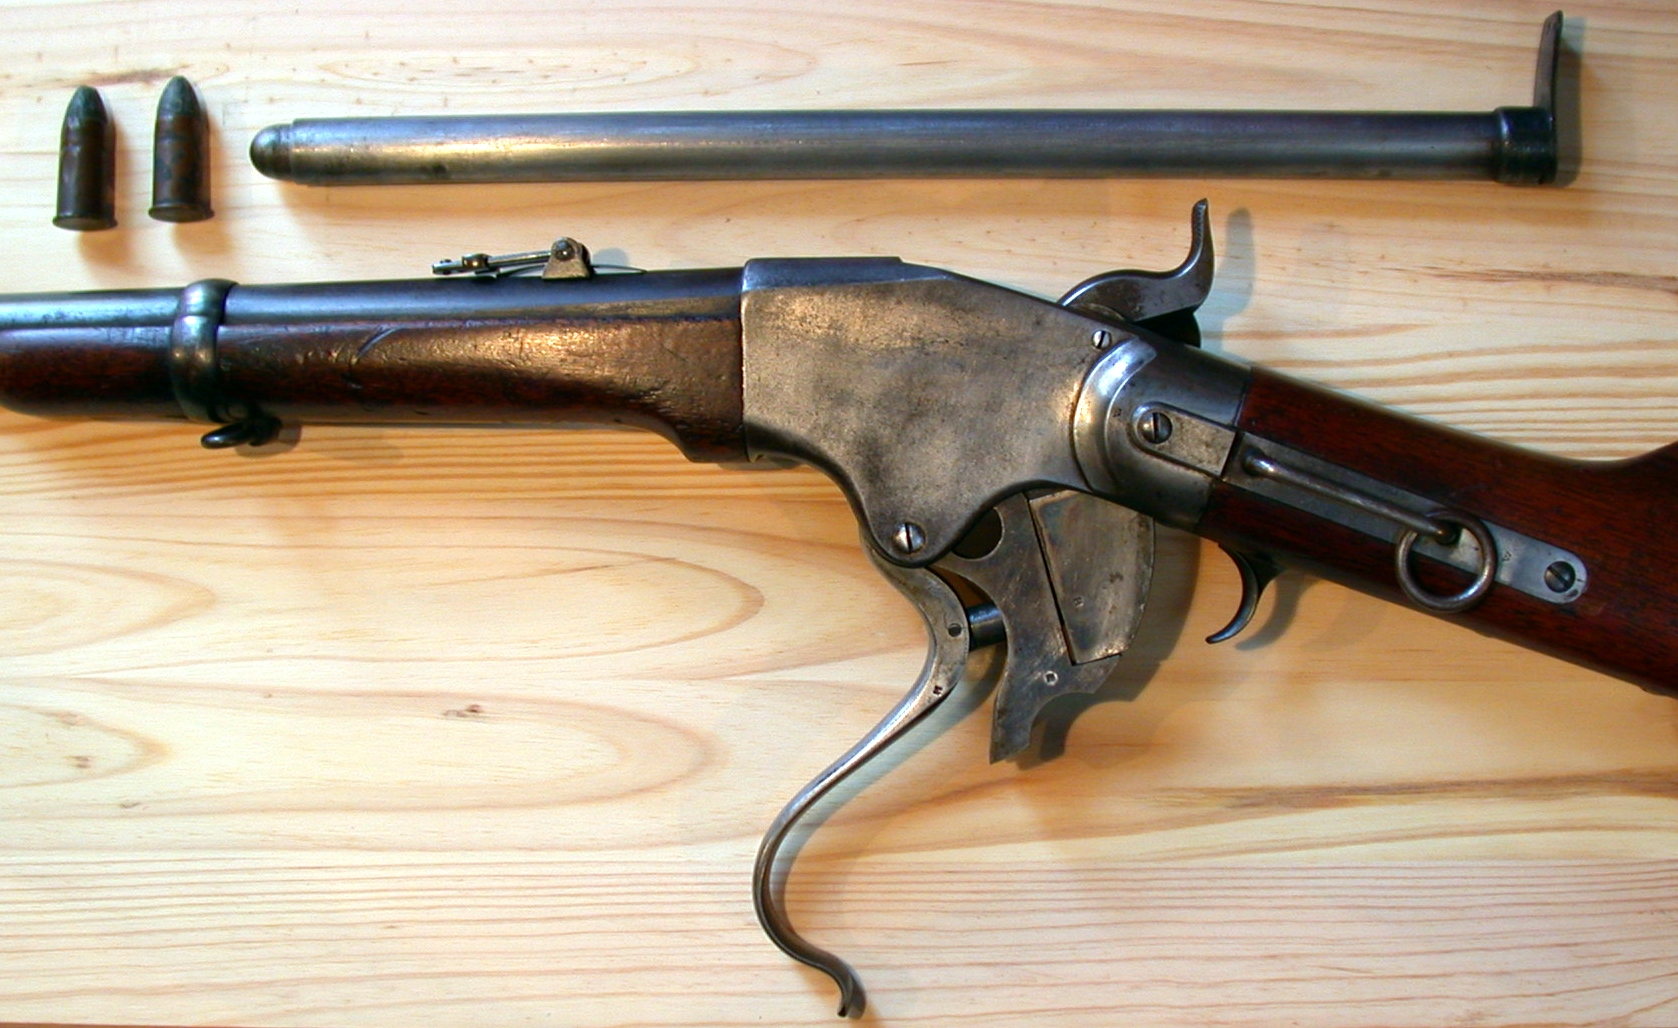 File:Spencer Carbine Mod 1865 JPG - Wikimedia Commons